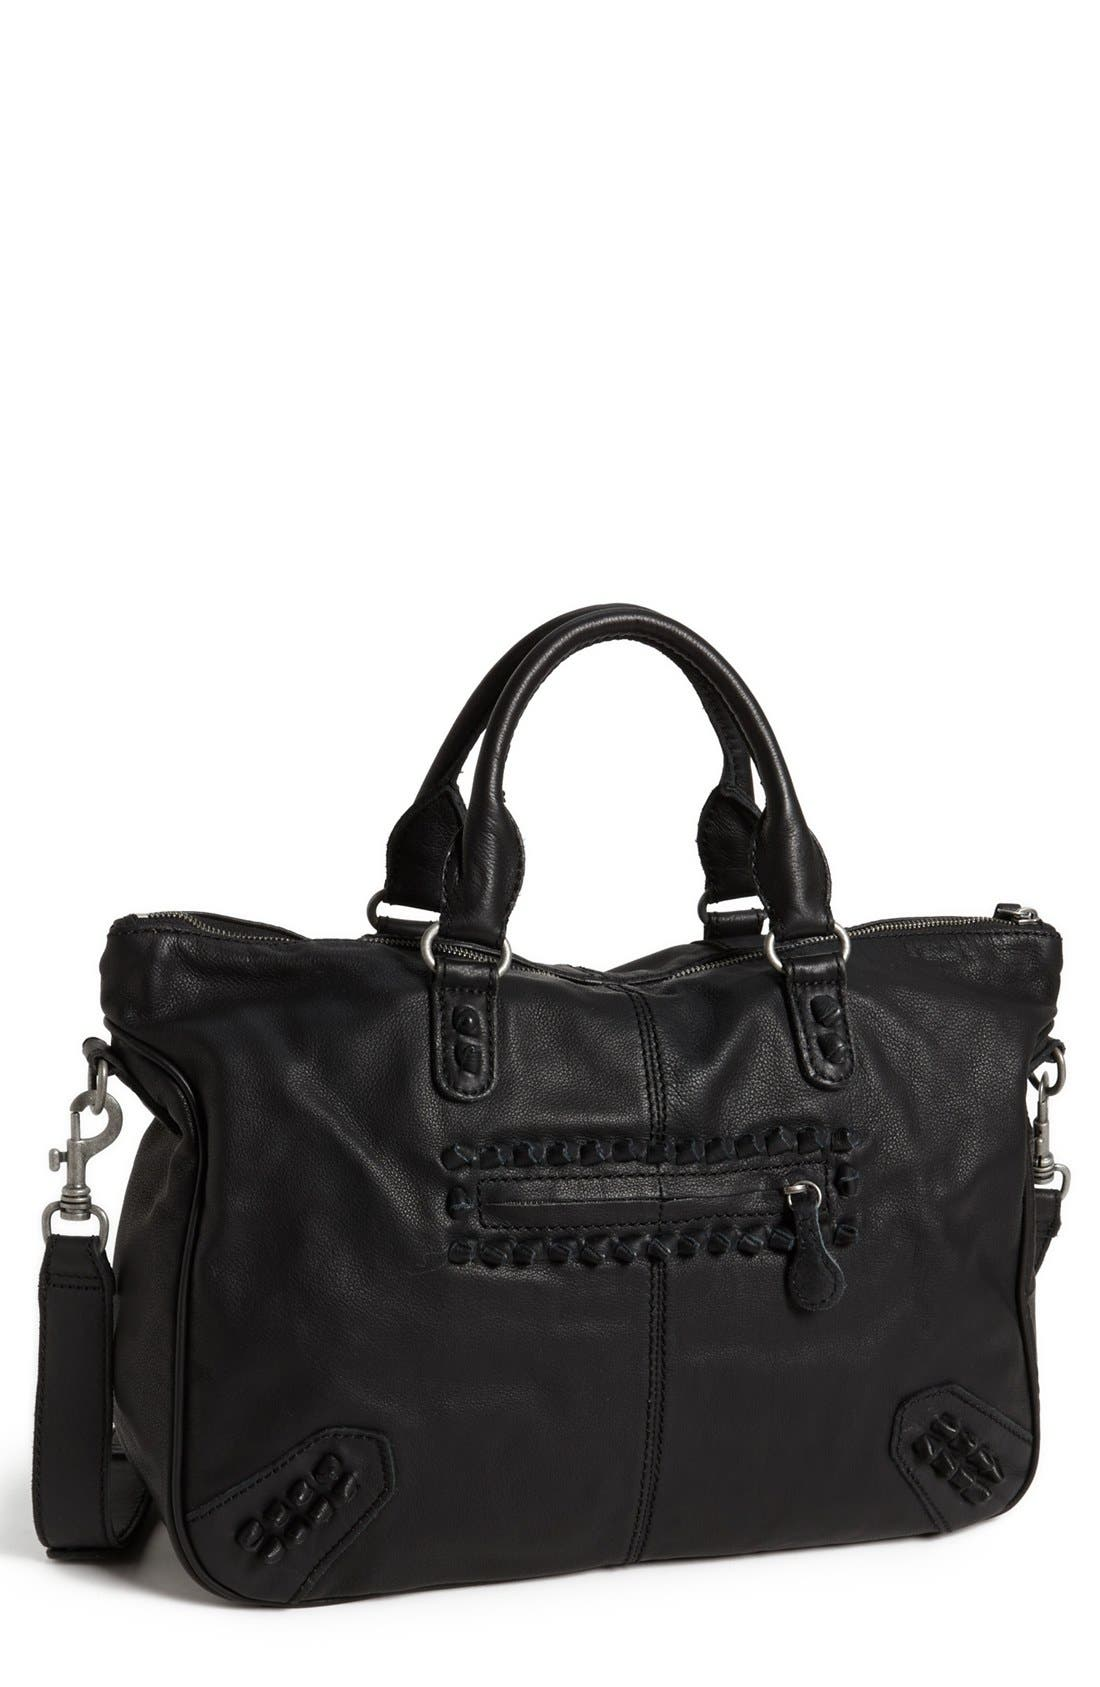 Main Image - Liebeskind 'Vintage Knot' Leather Satchel